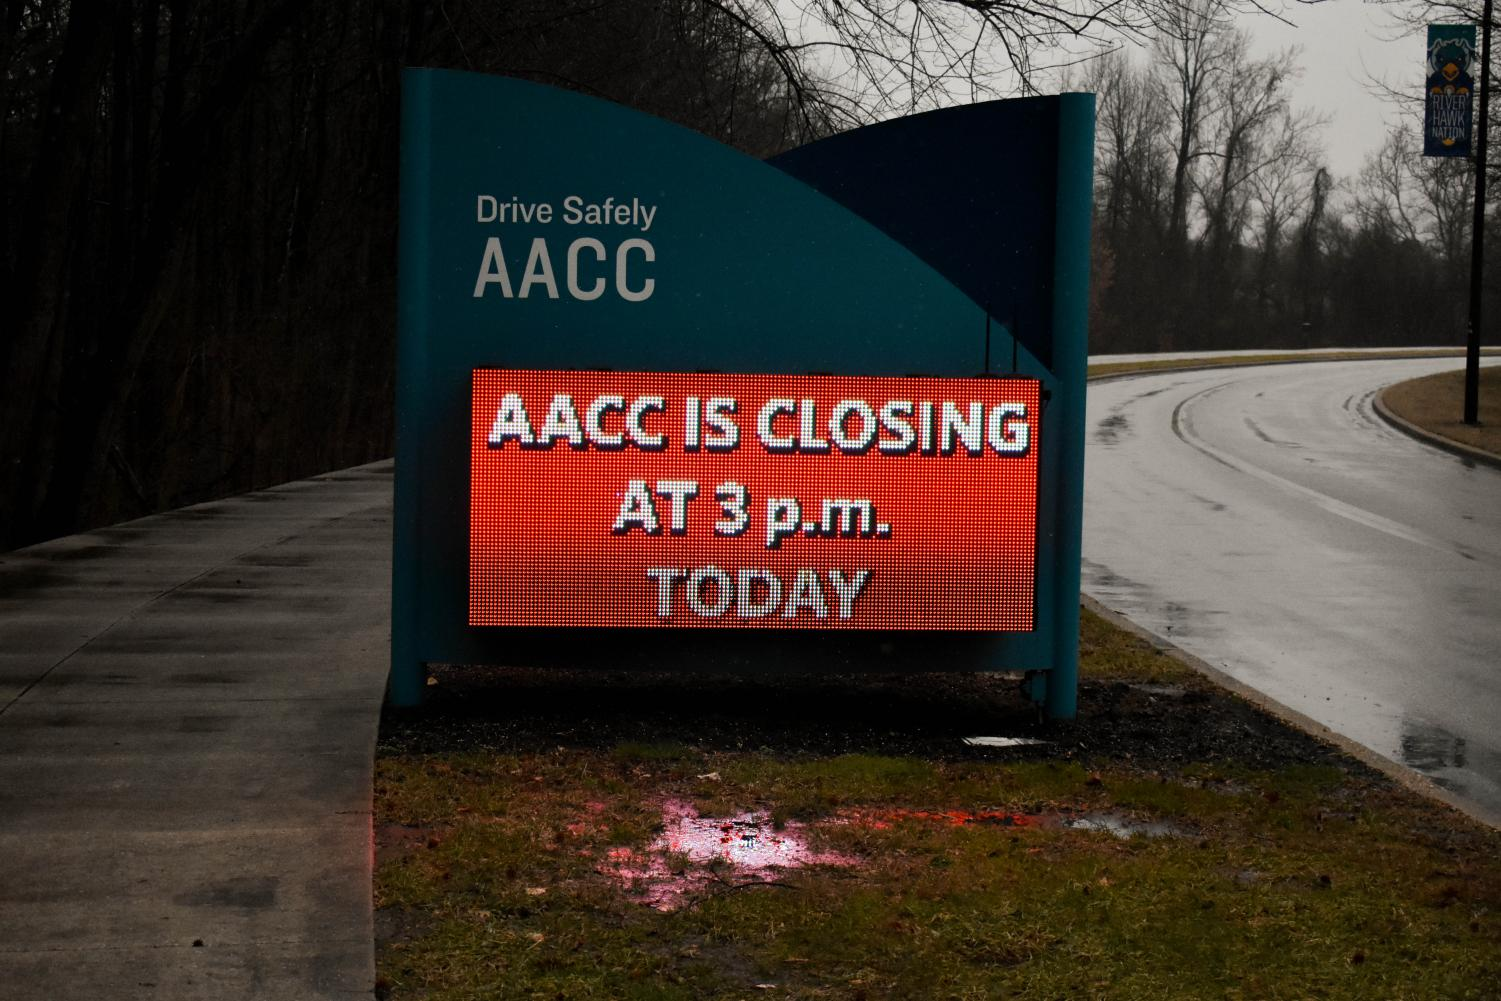 AACC has announced on their website and signage about the closing